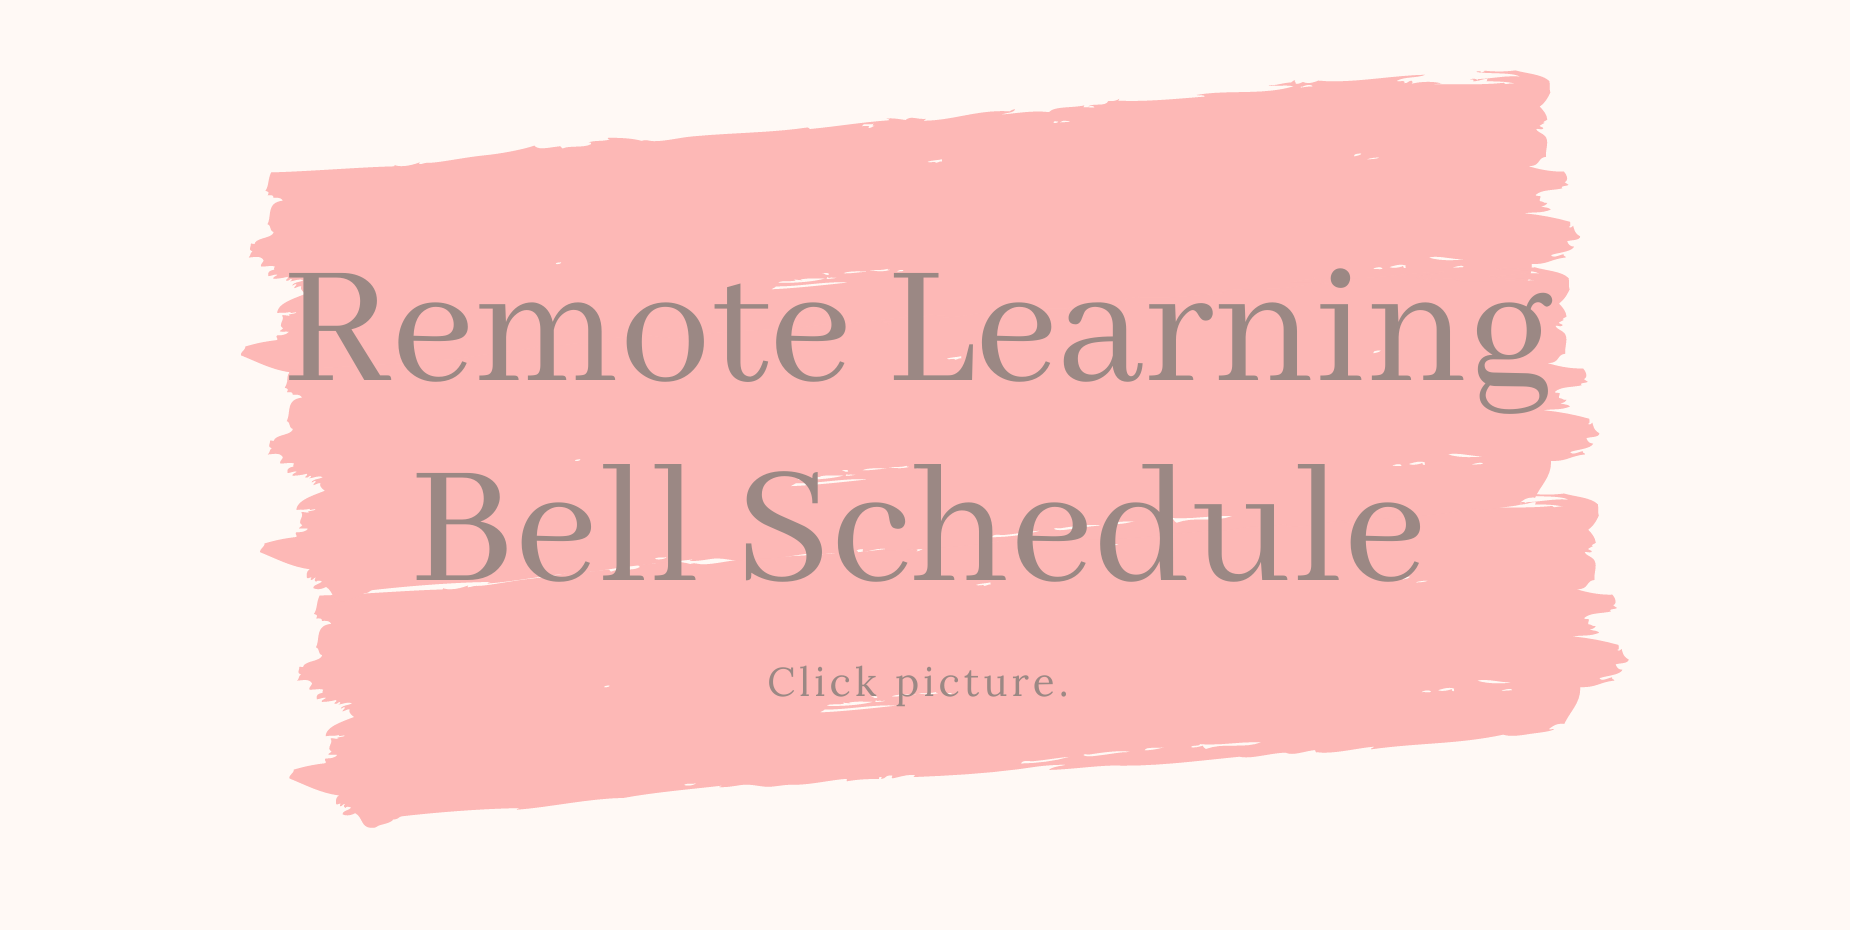 image shows paint streaks and remote learning bell schedule.